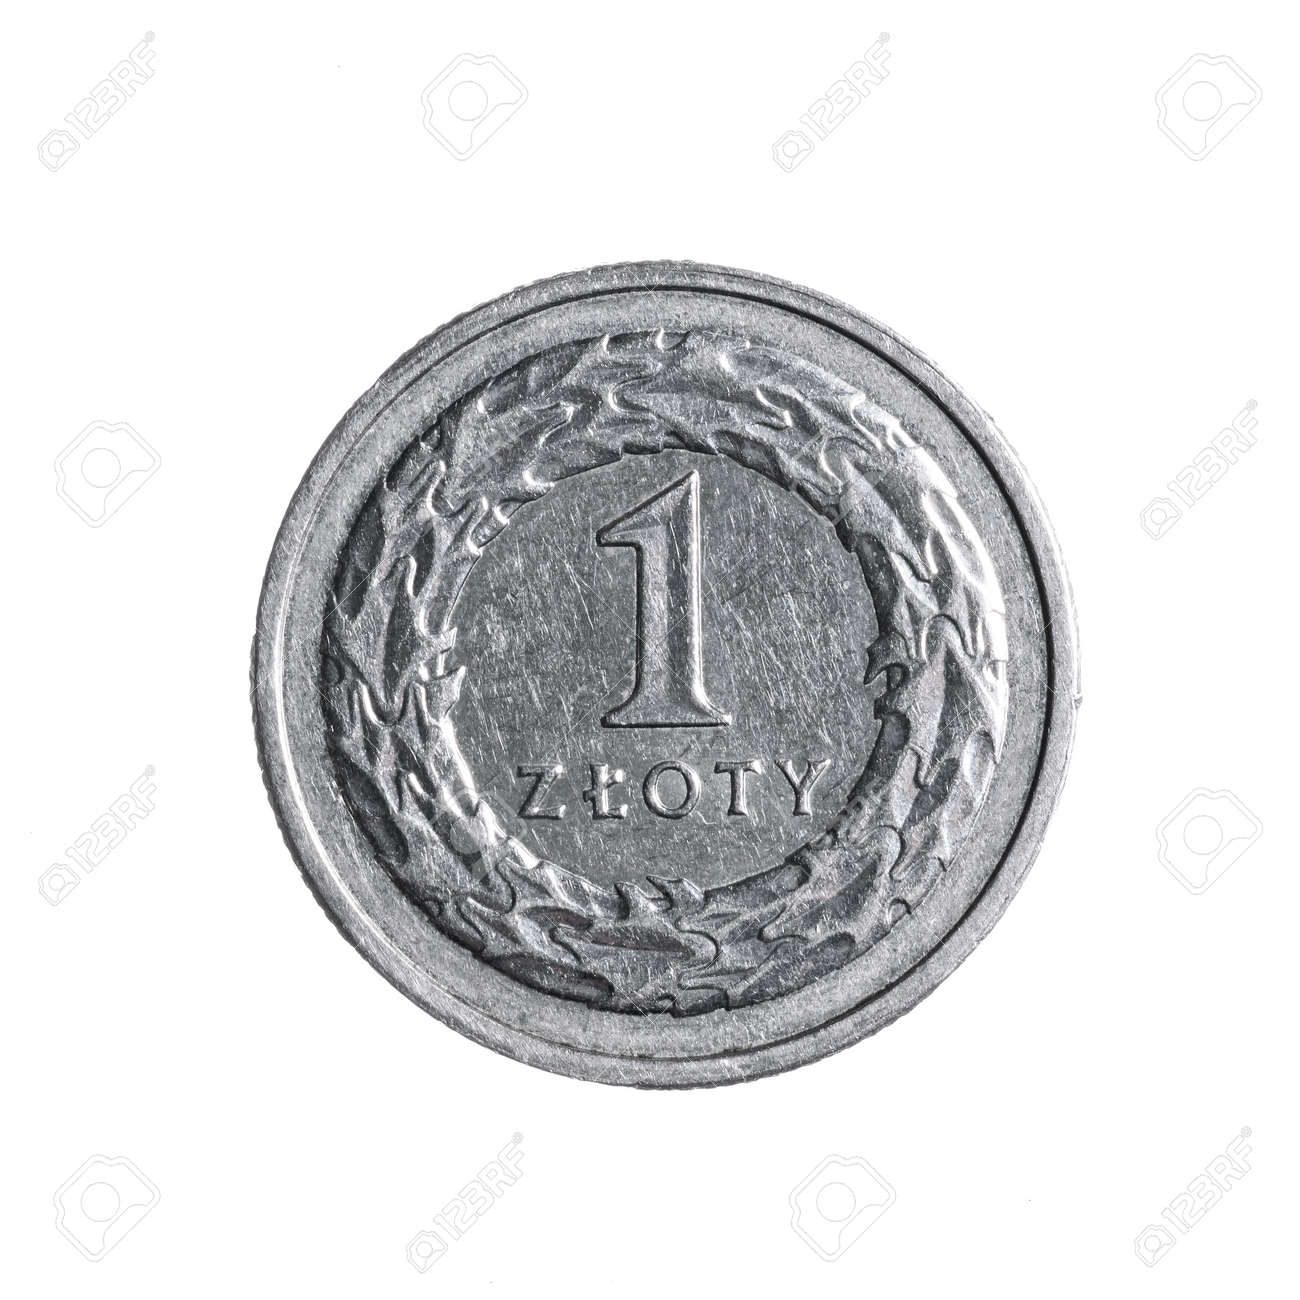 Close-up of a one polish zloty coin isolated on a white background. High details macro shot image. - 166984953